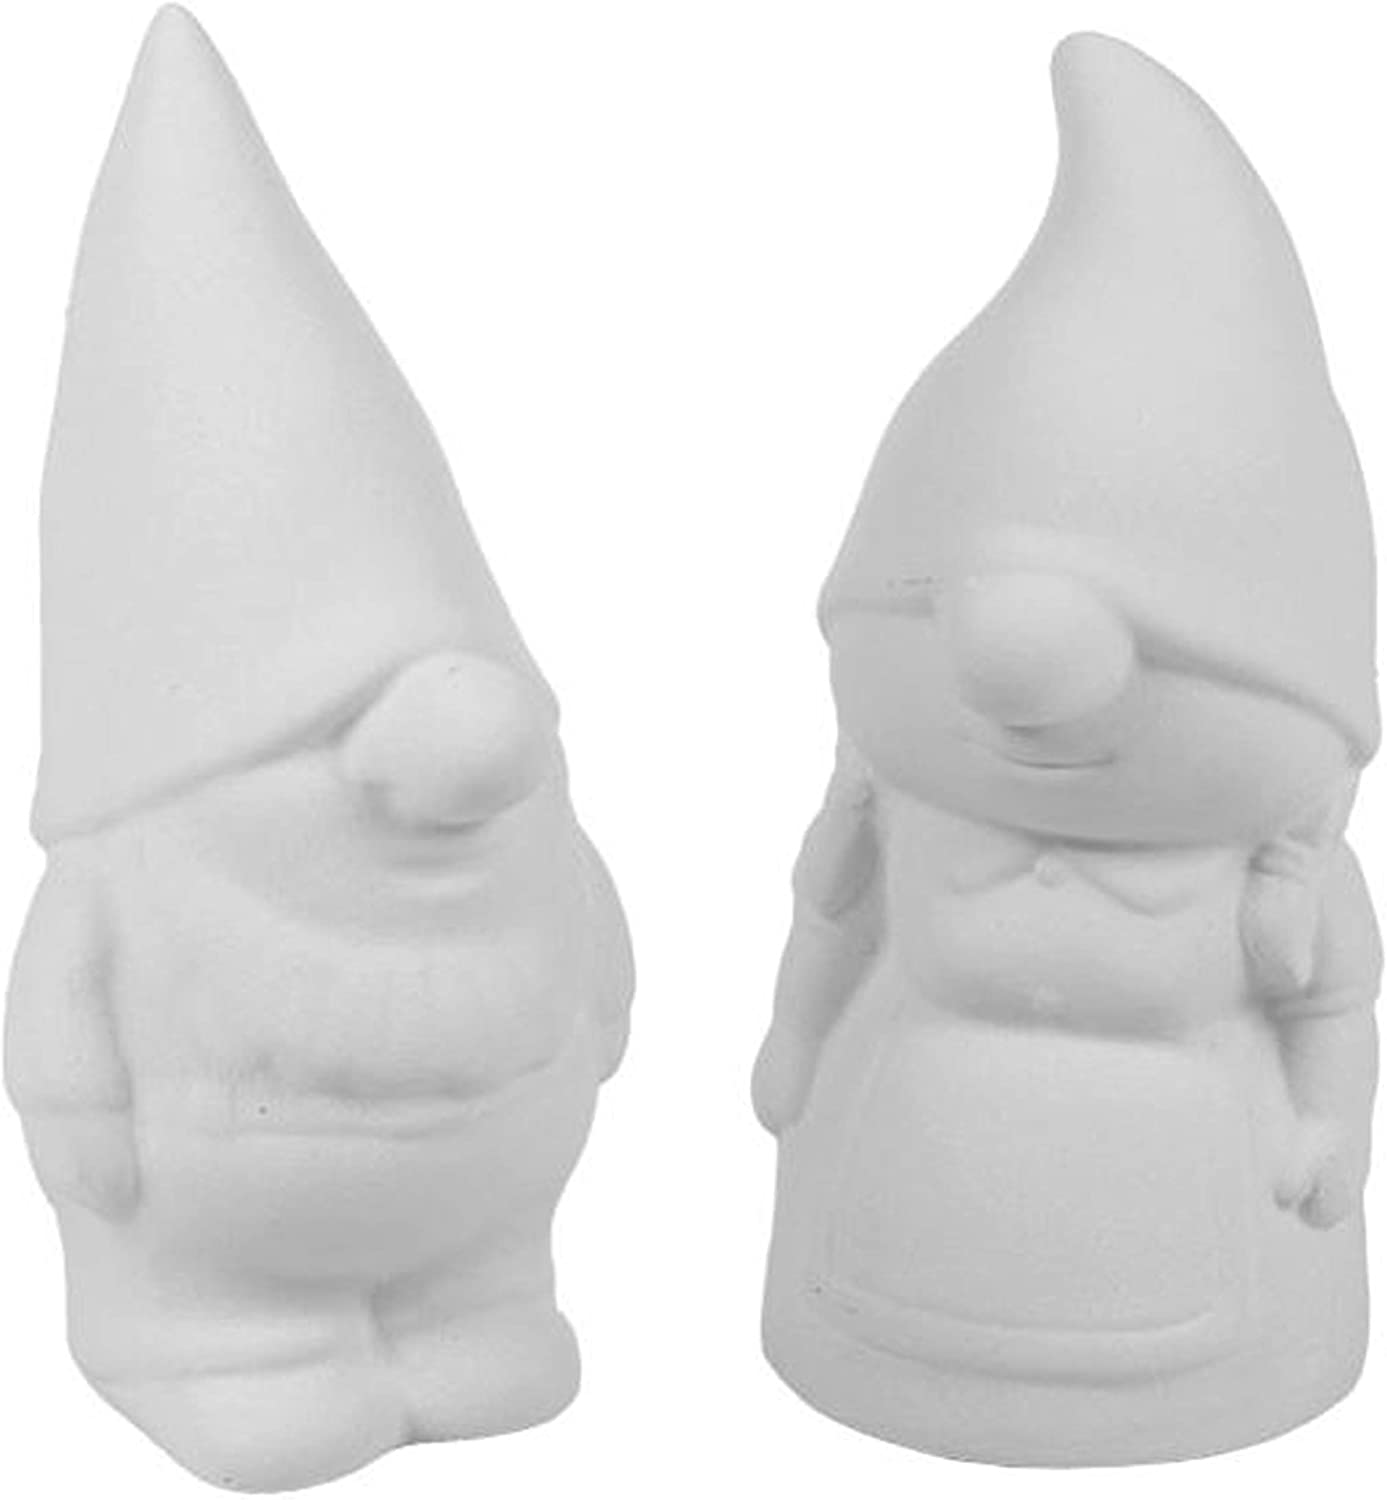 Gibson and Gretta The Garden Gnomes - Paint Your Own Gnome-y Ceramic Keepsakes